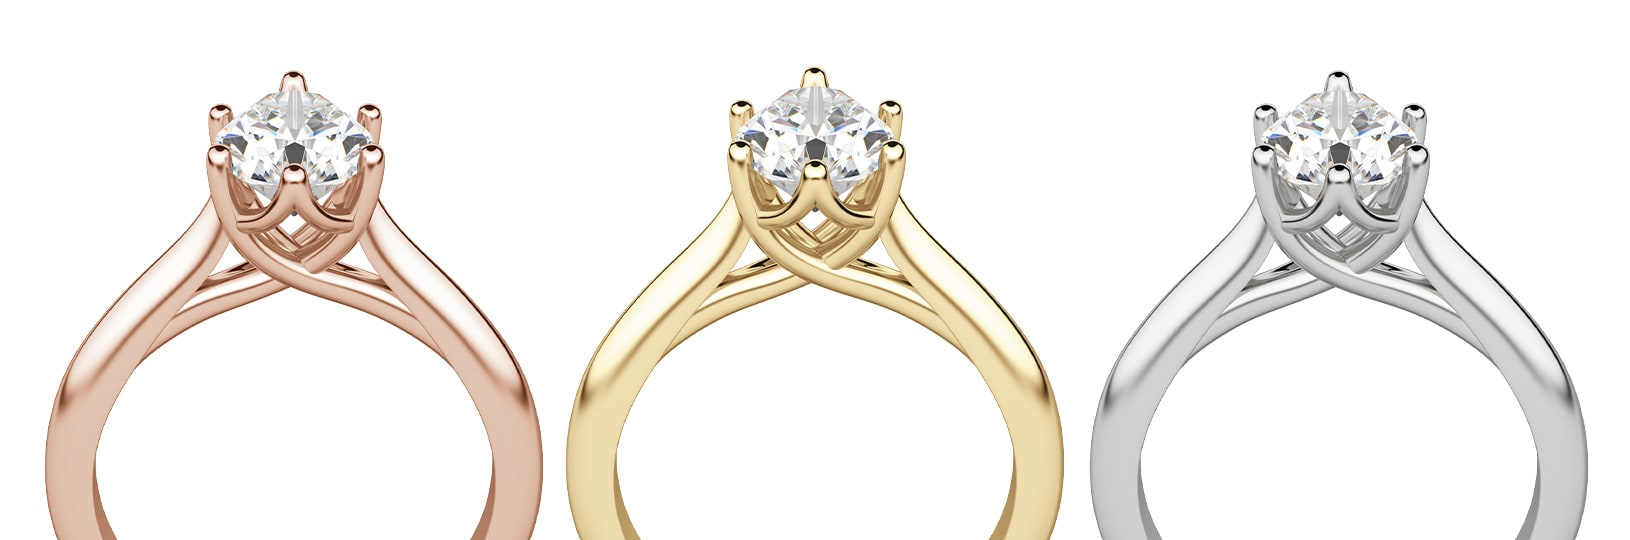 Rose gold, yellow gold and white gold all make for beautiful rings